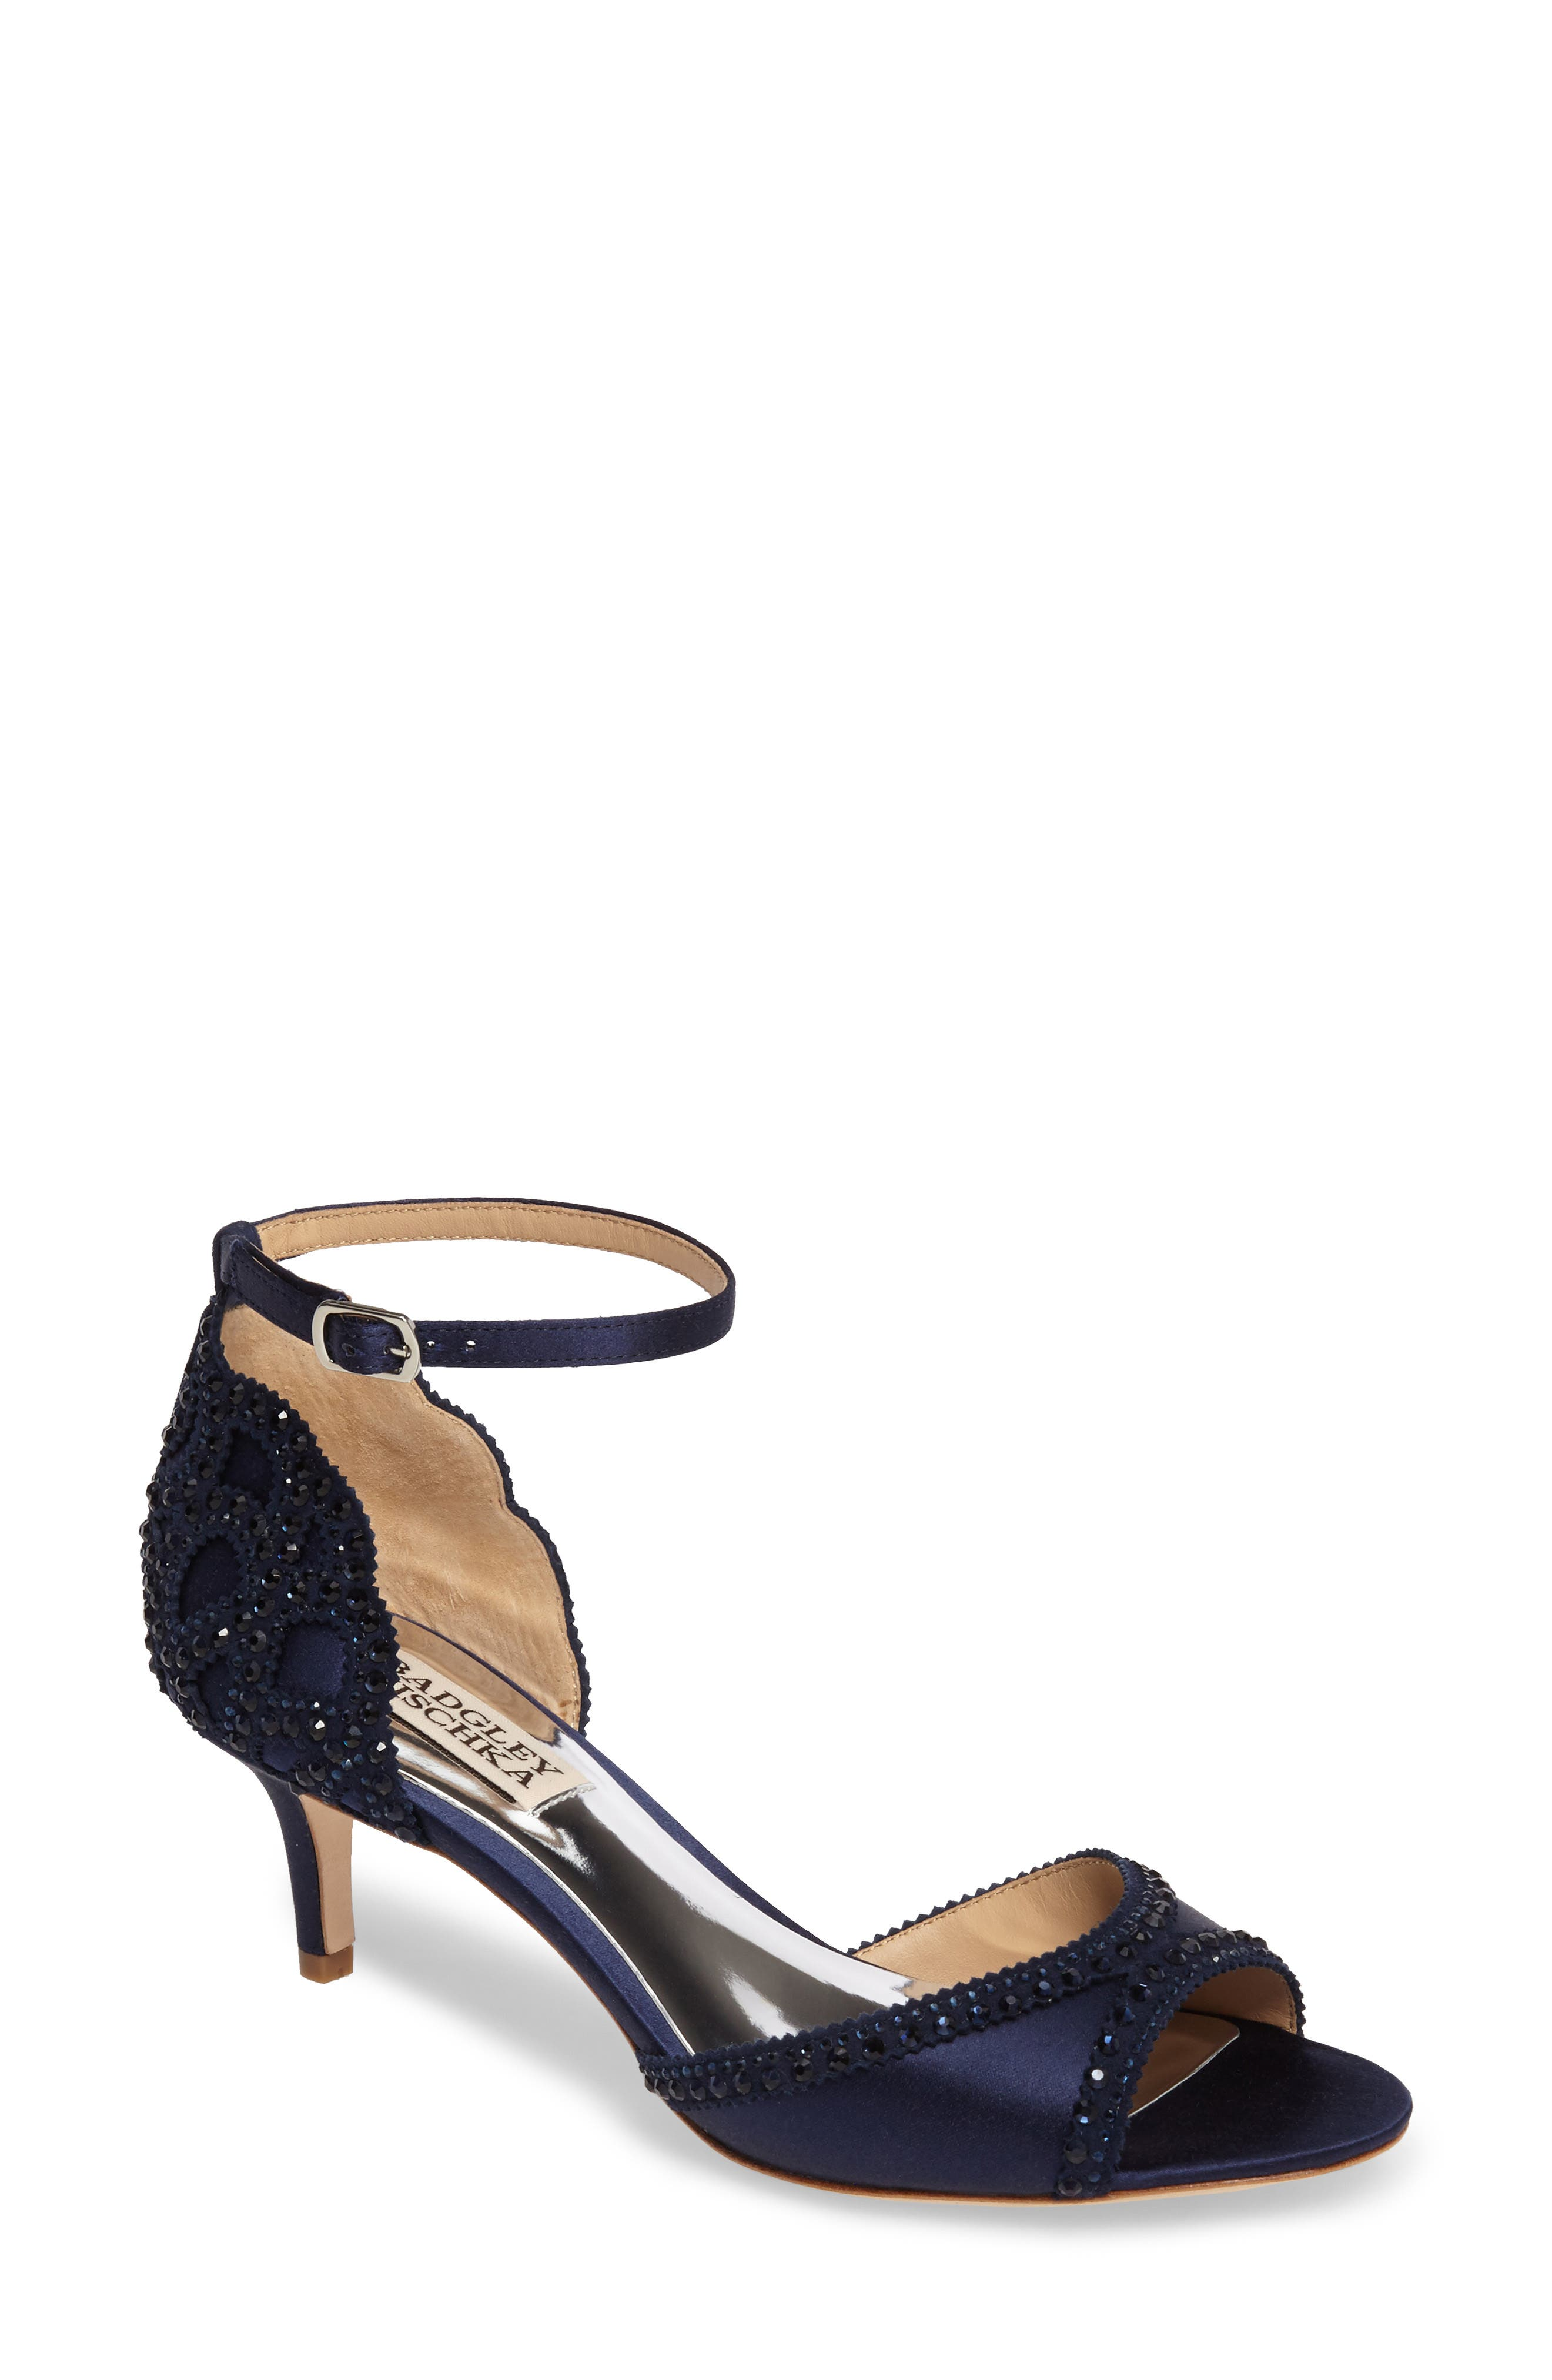 Badgley Mischka 'Gillian' Crystal Embellished d'Orsay Sandal,                             Main thumbnail 1, color,                             MIDNIGHT BLUE SATIN